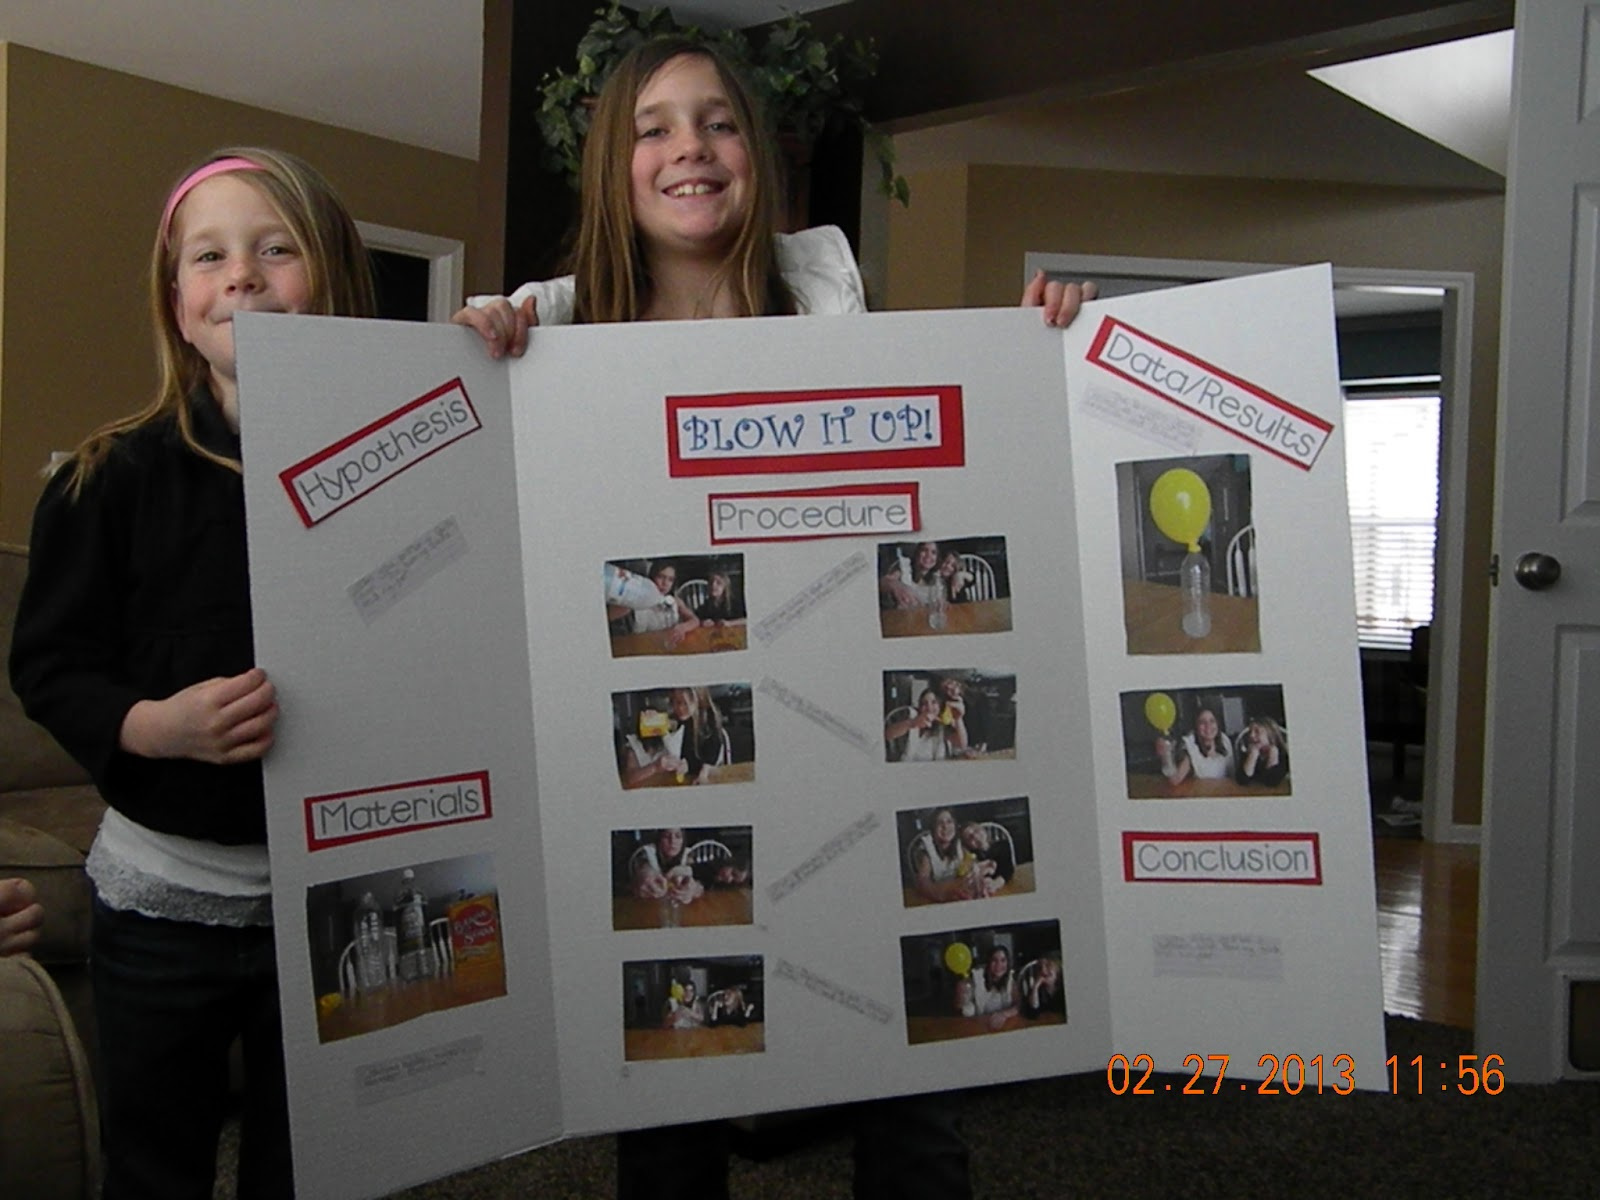 Worksheet Baking Science Projects my little corner of heaven pawlak style science fair project grace and jadyn decided against wishes that they wanted to participate in the at school this year are doing the